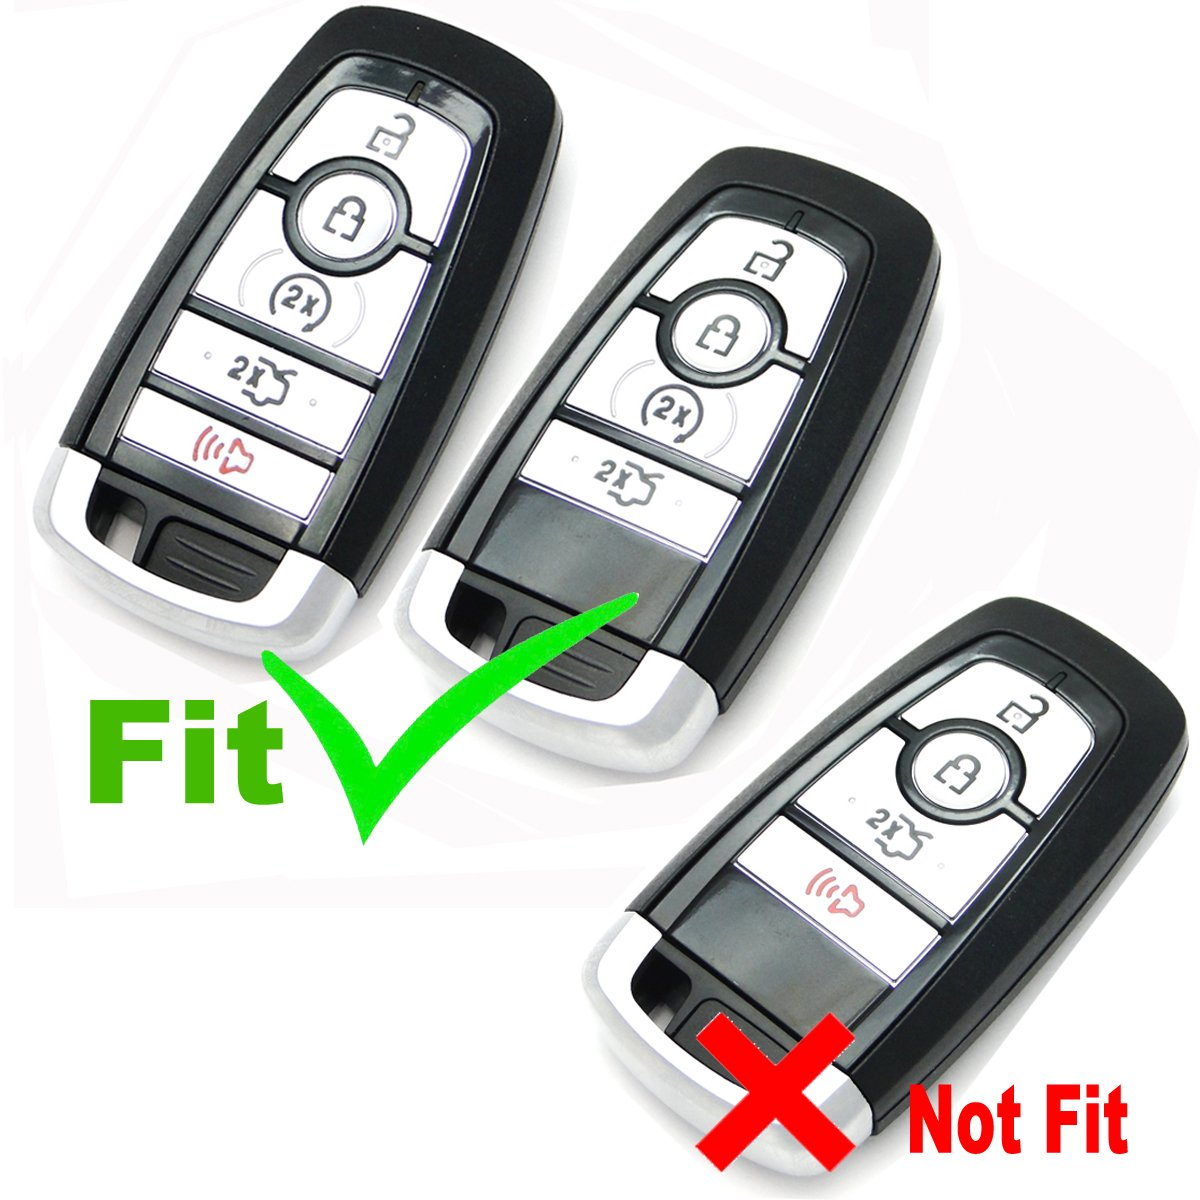 Coolbestda Leather Smart Key Fob Cover Case Skin Jacket Keyless Entry Keychain Accessories for 2017 Ford Fusion F250 F350 F450 F550 2018 Edge Explorer STR-5929506